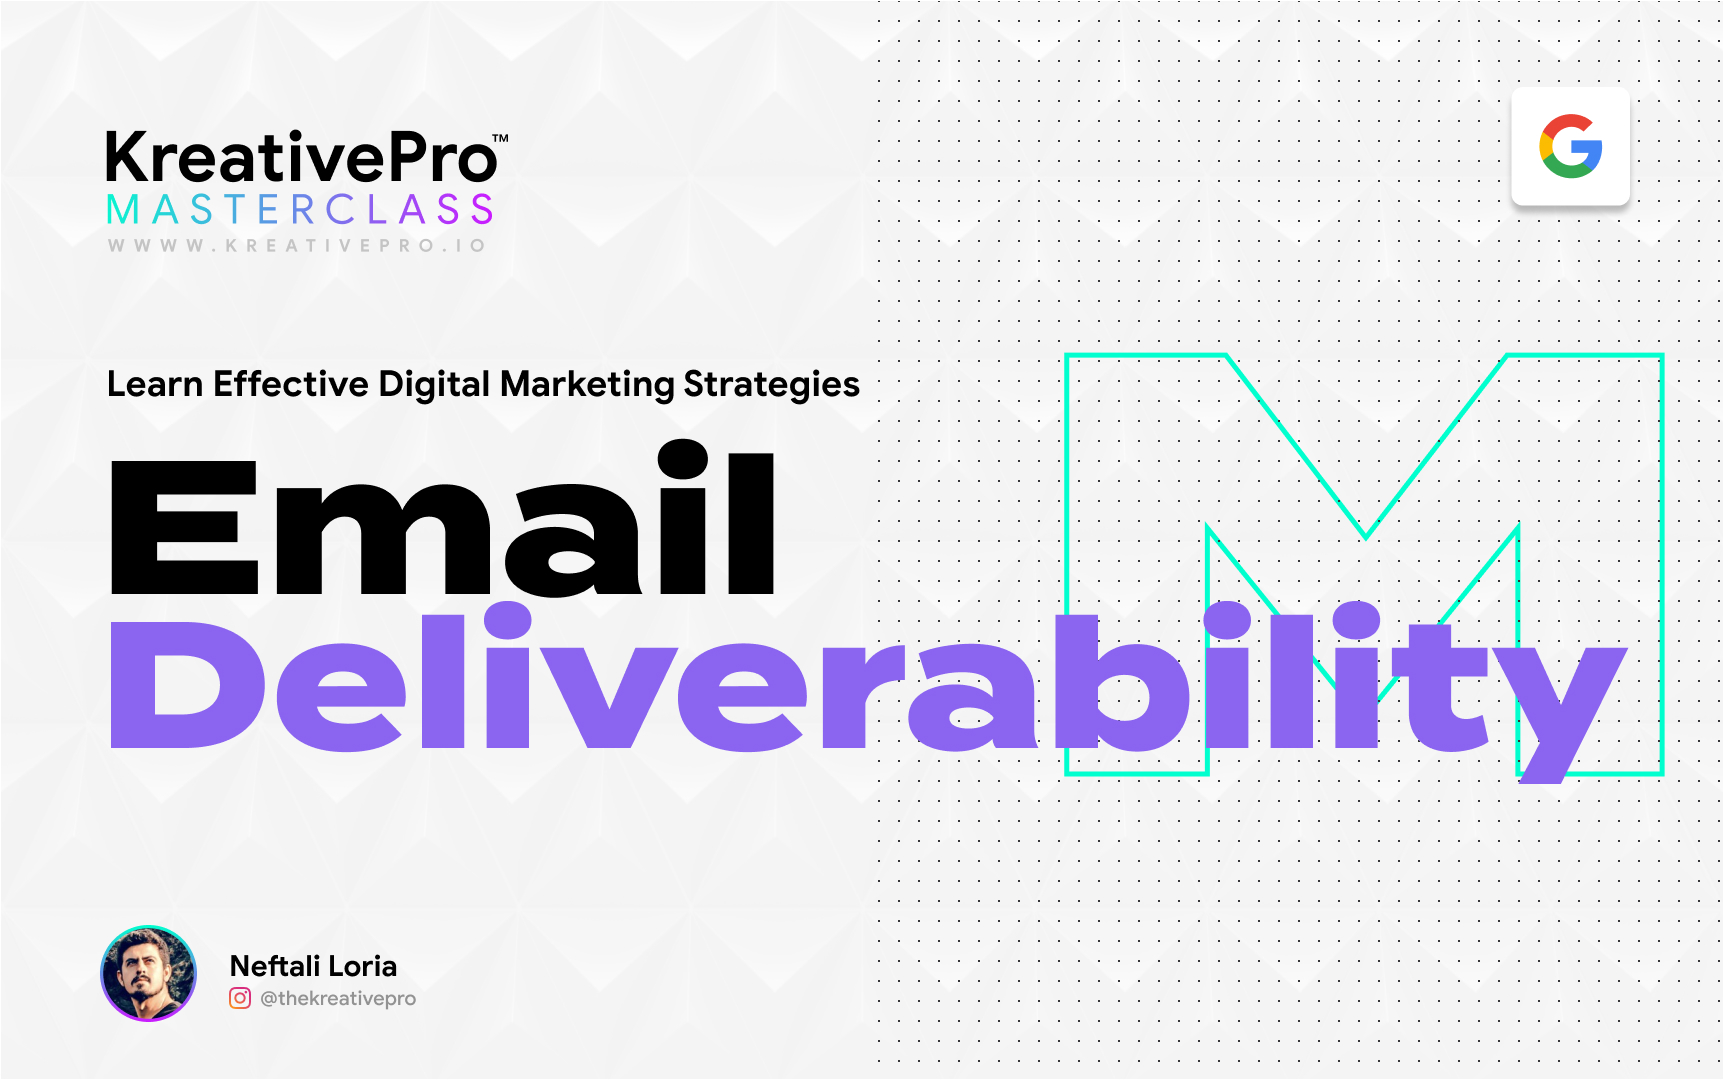 Marketing 2.3 - Email Deliverability